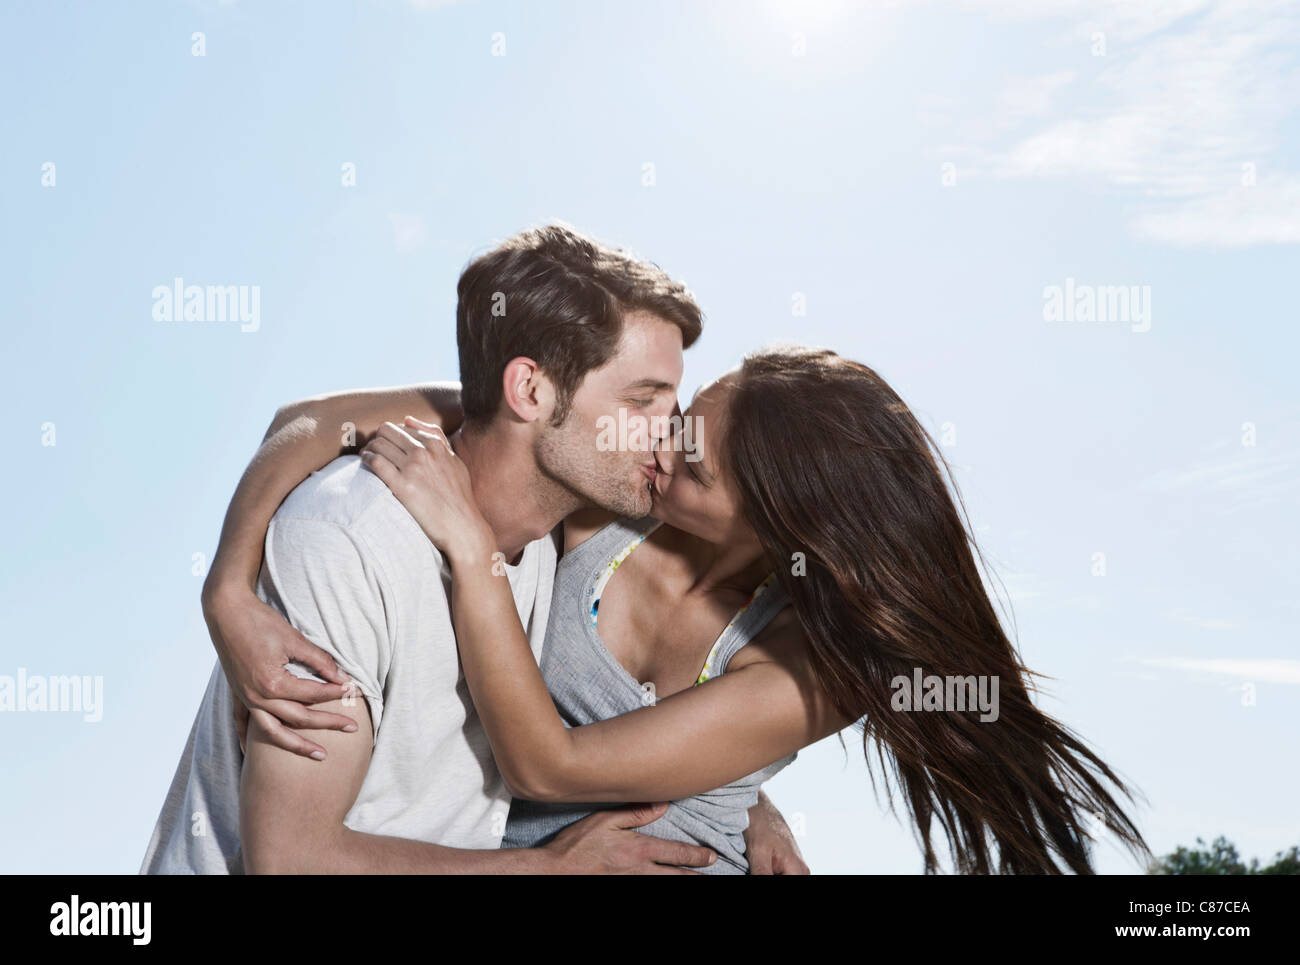 Spain, Majorca, Young couple kissing each other - Stock Image